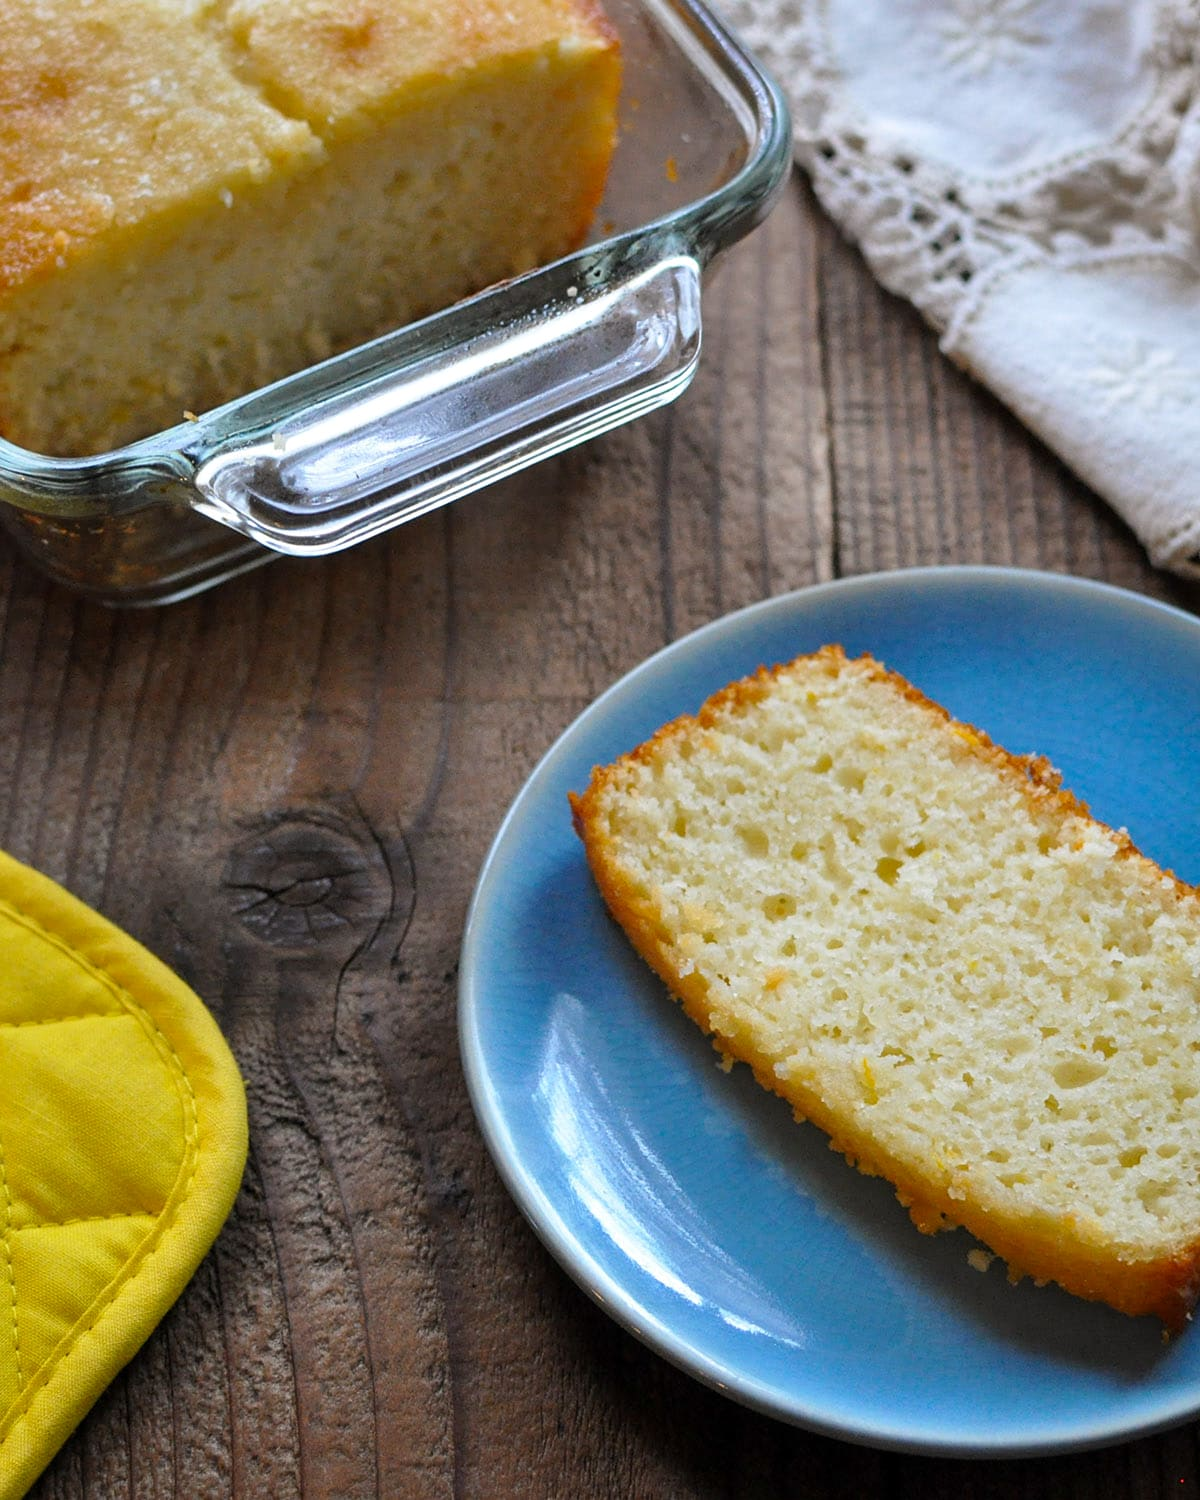 a slice of lemon bread on a blue plate next to the loaf of lemon bread in a glass baking dish